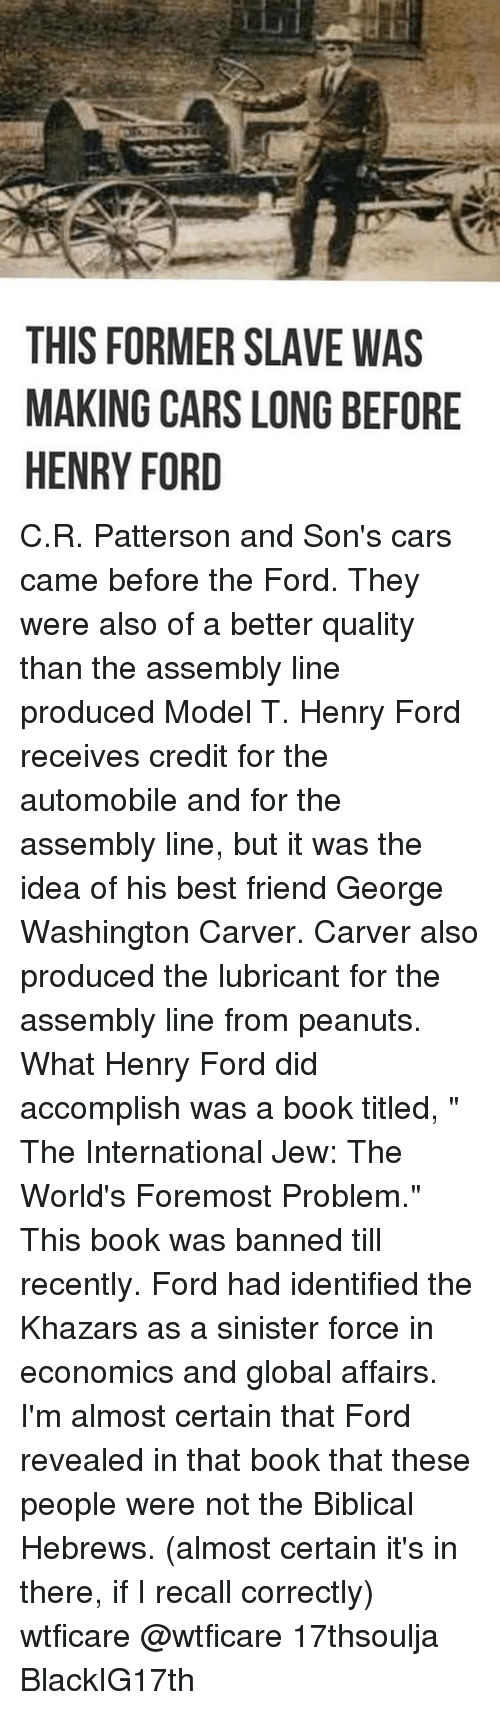 "Henry Ford: THIS FORMER SLAVE WAS  MAKING CARS LONG BEFORE  HENRY FORD C.R. Patterson and Son's cars came before the Ford. They were also of a better quality than the assembly line produced Model T. Henry Ford receives credit for the automobile and for the assembly line, but it was the idea of his best friend George Washington Carver. Carver also produced the lubricant for the assembly line from peanuts. What Henry Ford did accomplish was a book titled, "" The International Jew: The World's Foremost Problem."" This book was banned till recently. Ford had identified the Khazars as a sinister force in economics and global affairs. I'm almost certain that Ford revealed in that book that these people were not the Biblical Hebrews. (almost certain it's in there, if I recall correctly) wtficare @wtficare 17thsoulja BlackIG17th"